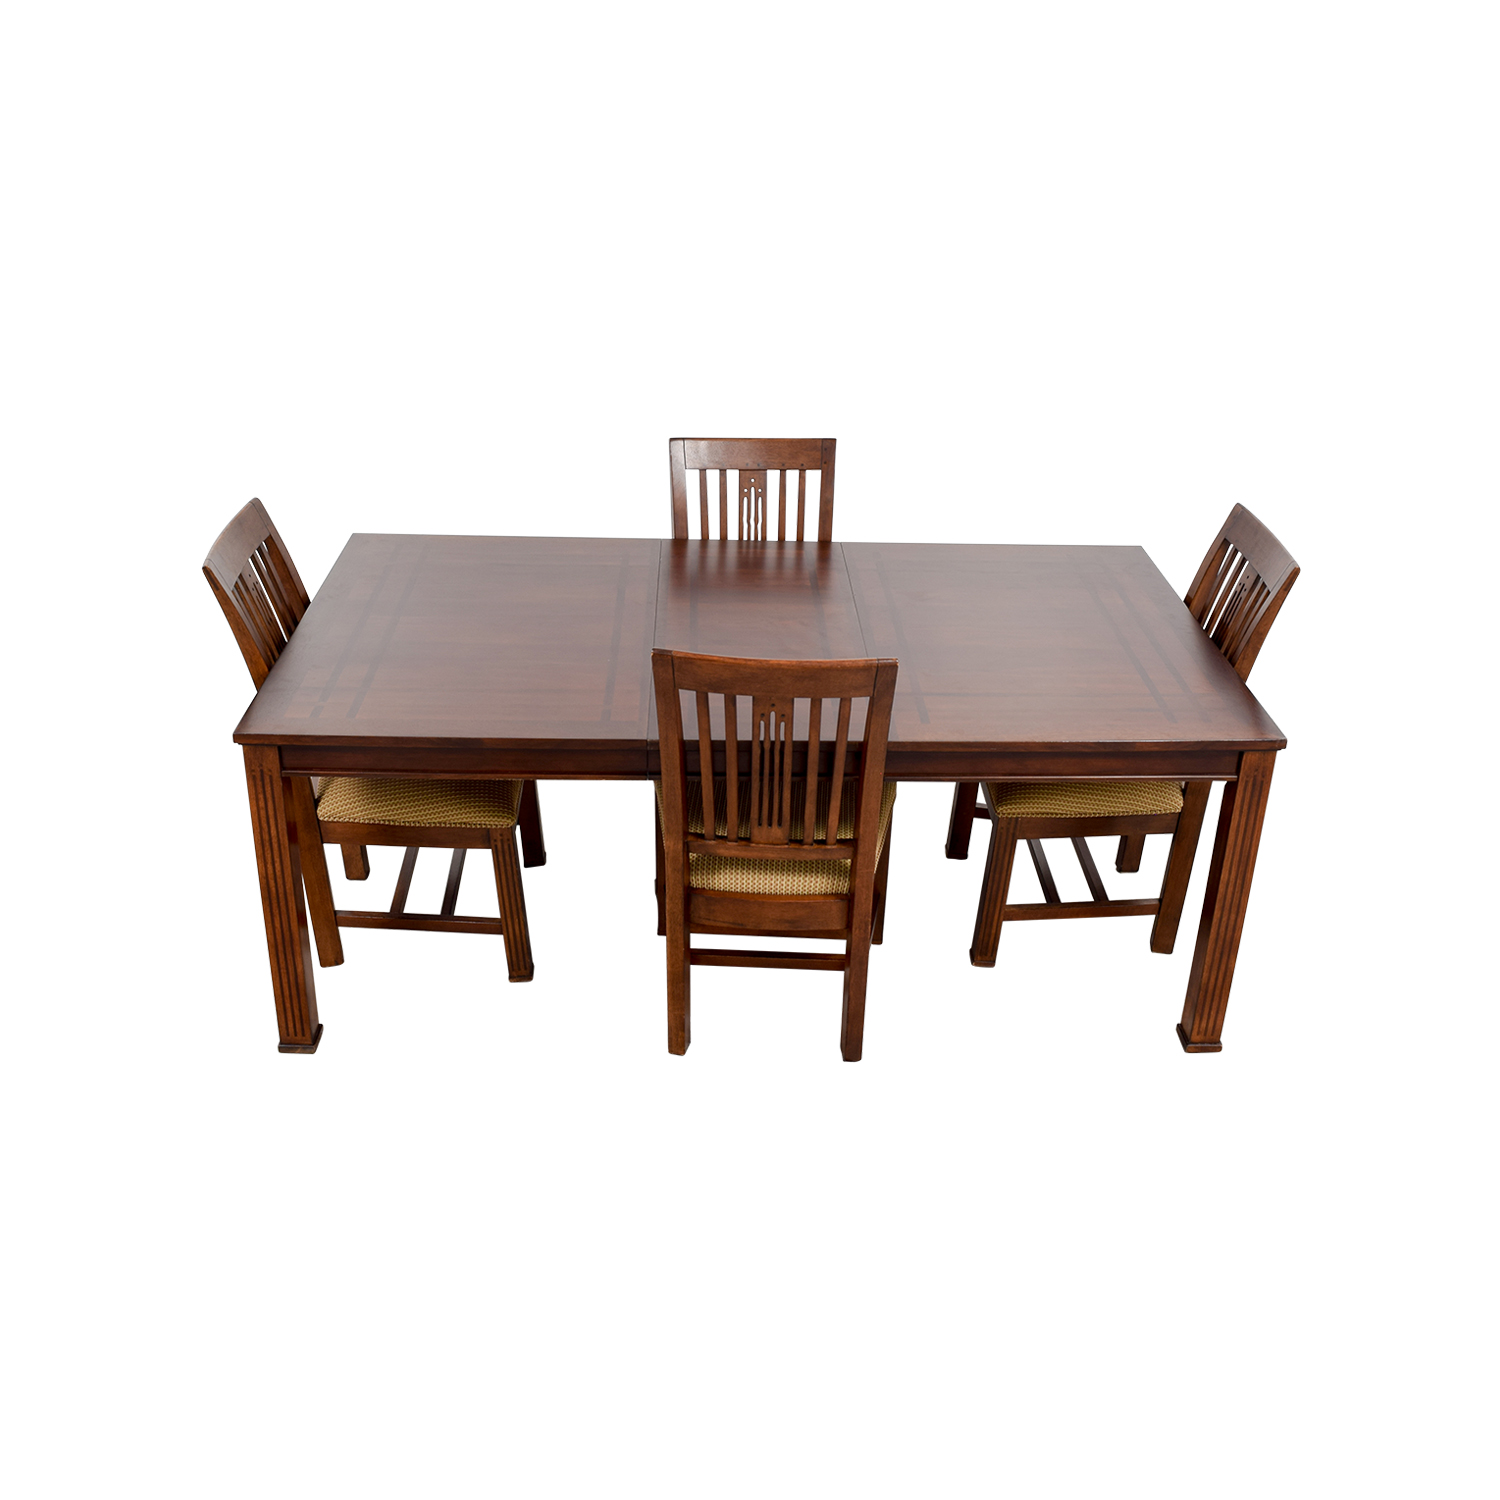 56% OFF Macy s Macy s Craft Mission Shaker Table and Chairs Tables